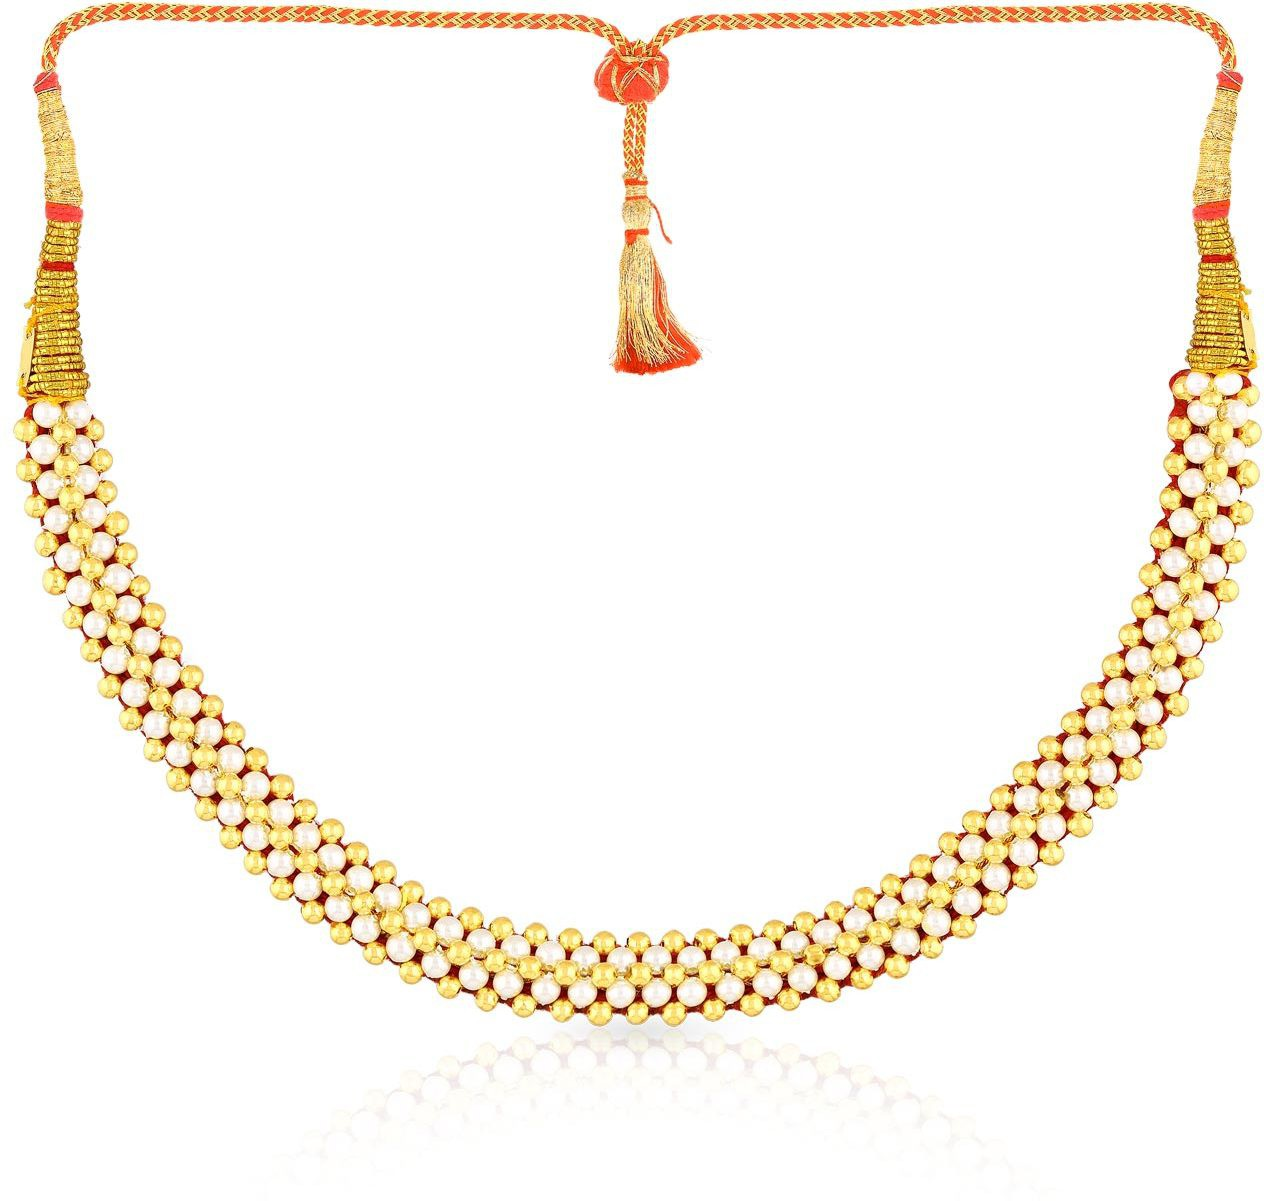 Deals - Delhi - Precious Jewellery <br> Earring, Pendants...<br> Category - jewellery<br> Business - Flipkart.com